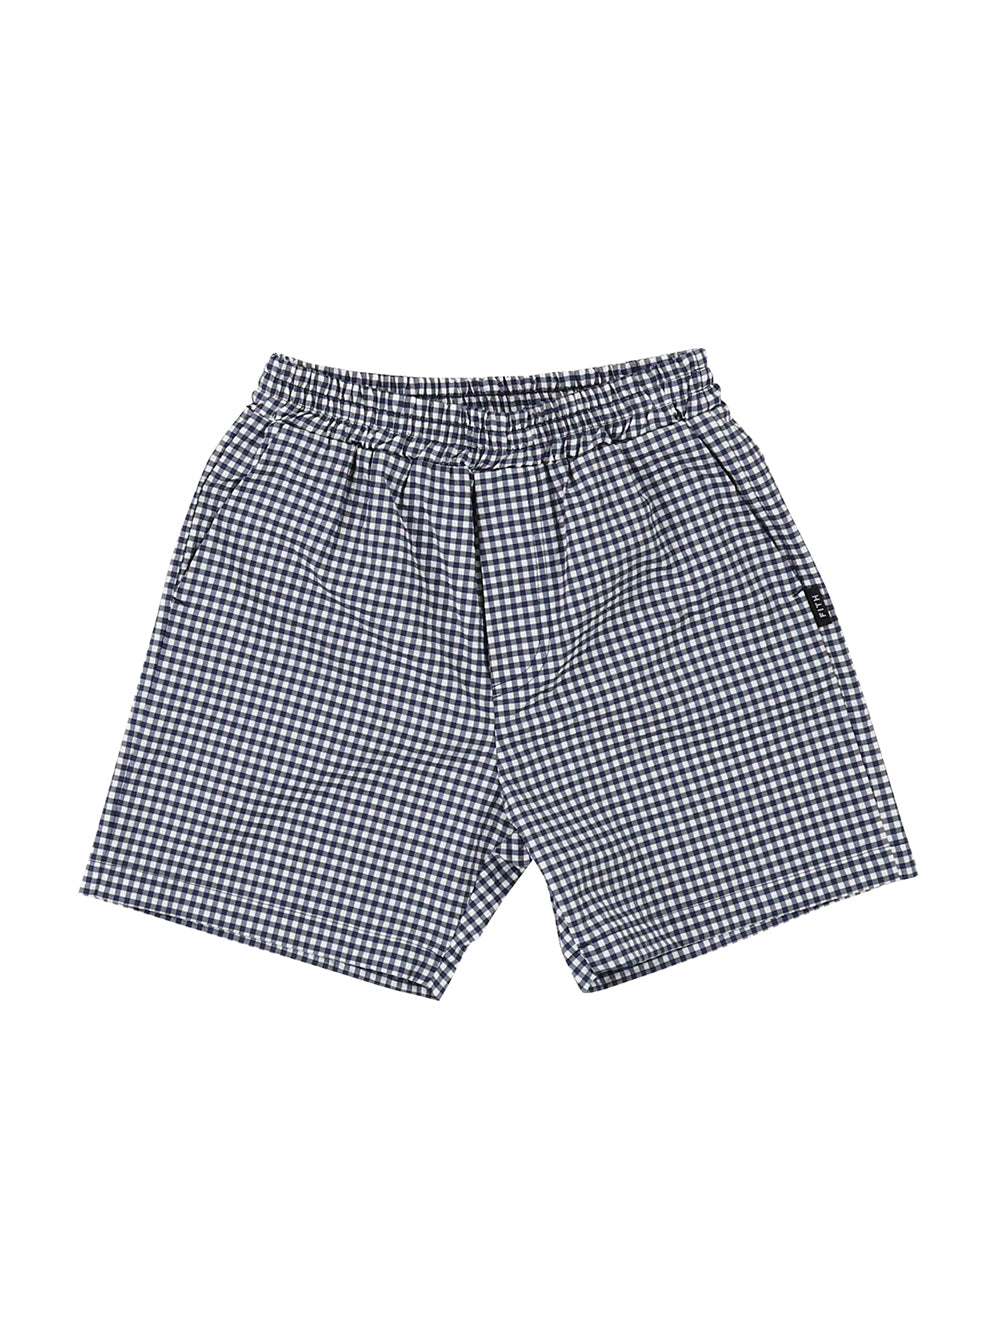 Coolmax Micro-Checked Shorts